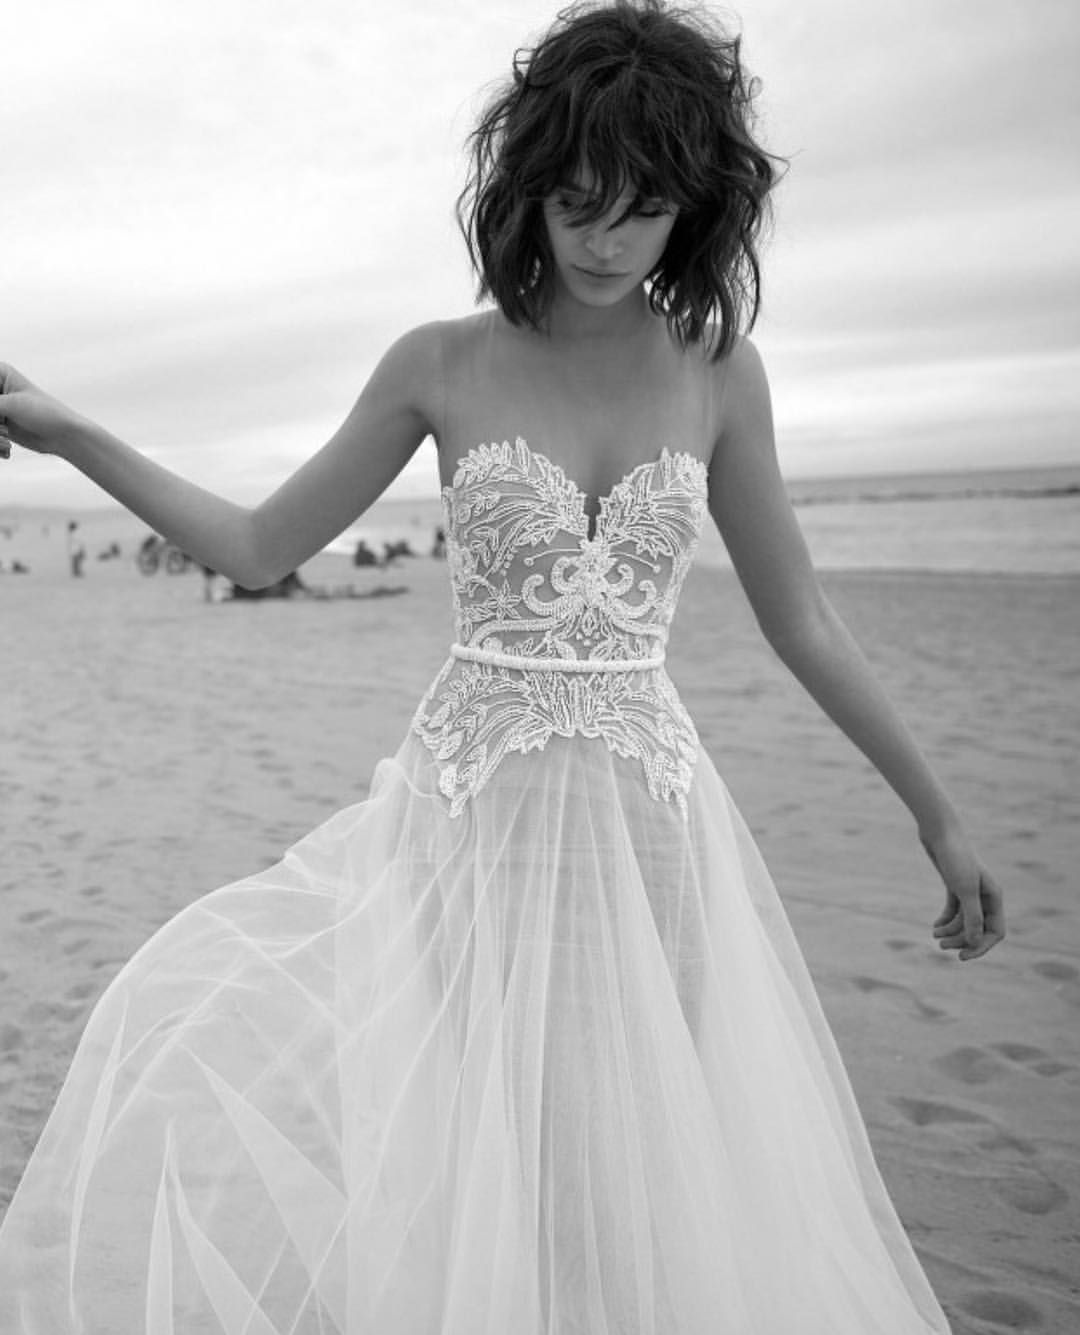 Pin by alicia windisch on wedding pinterest gowns girls and